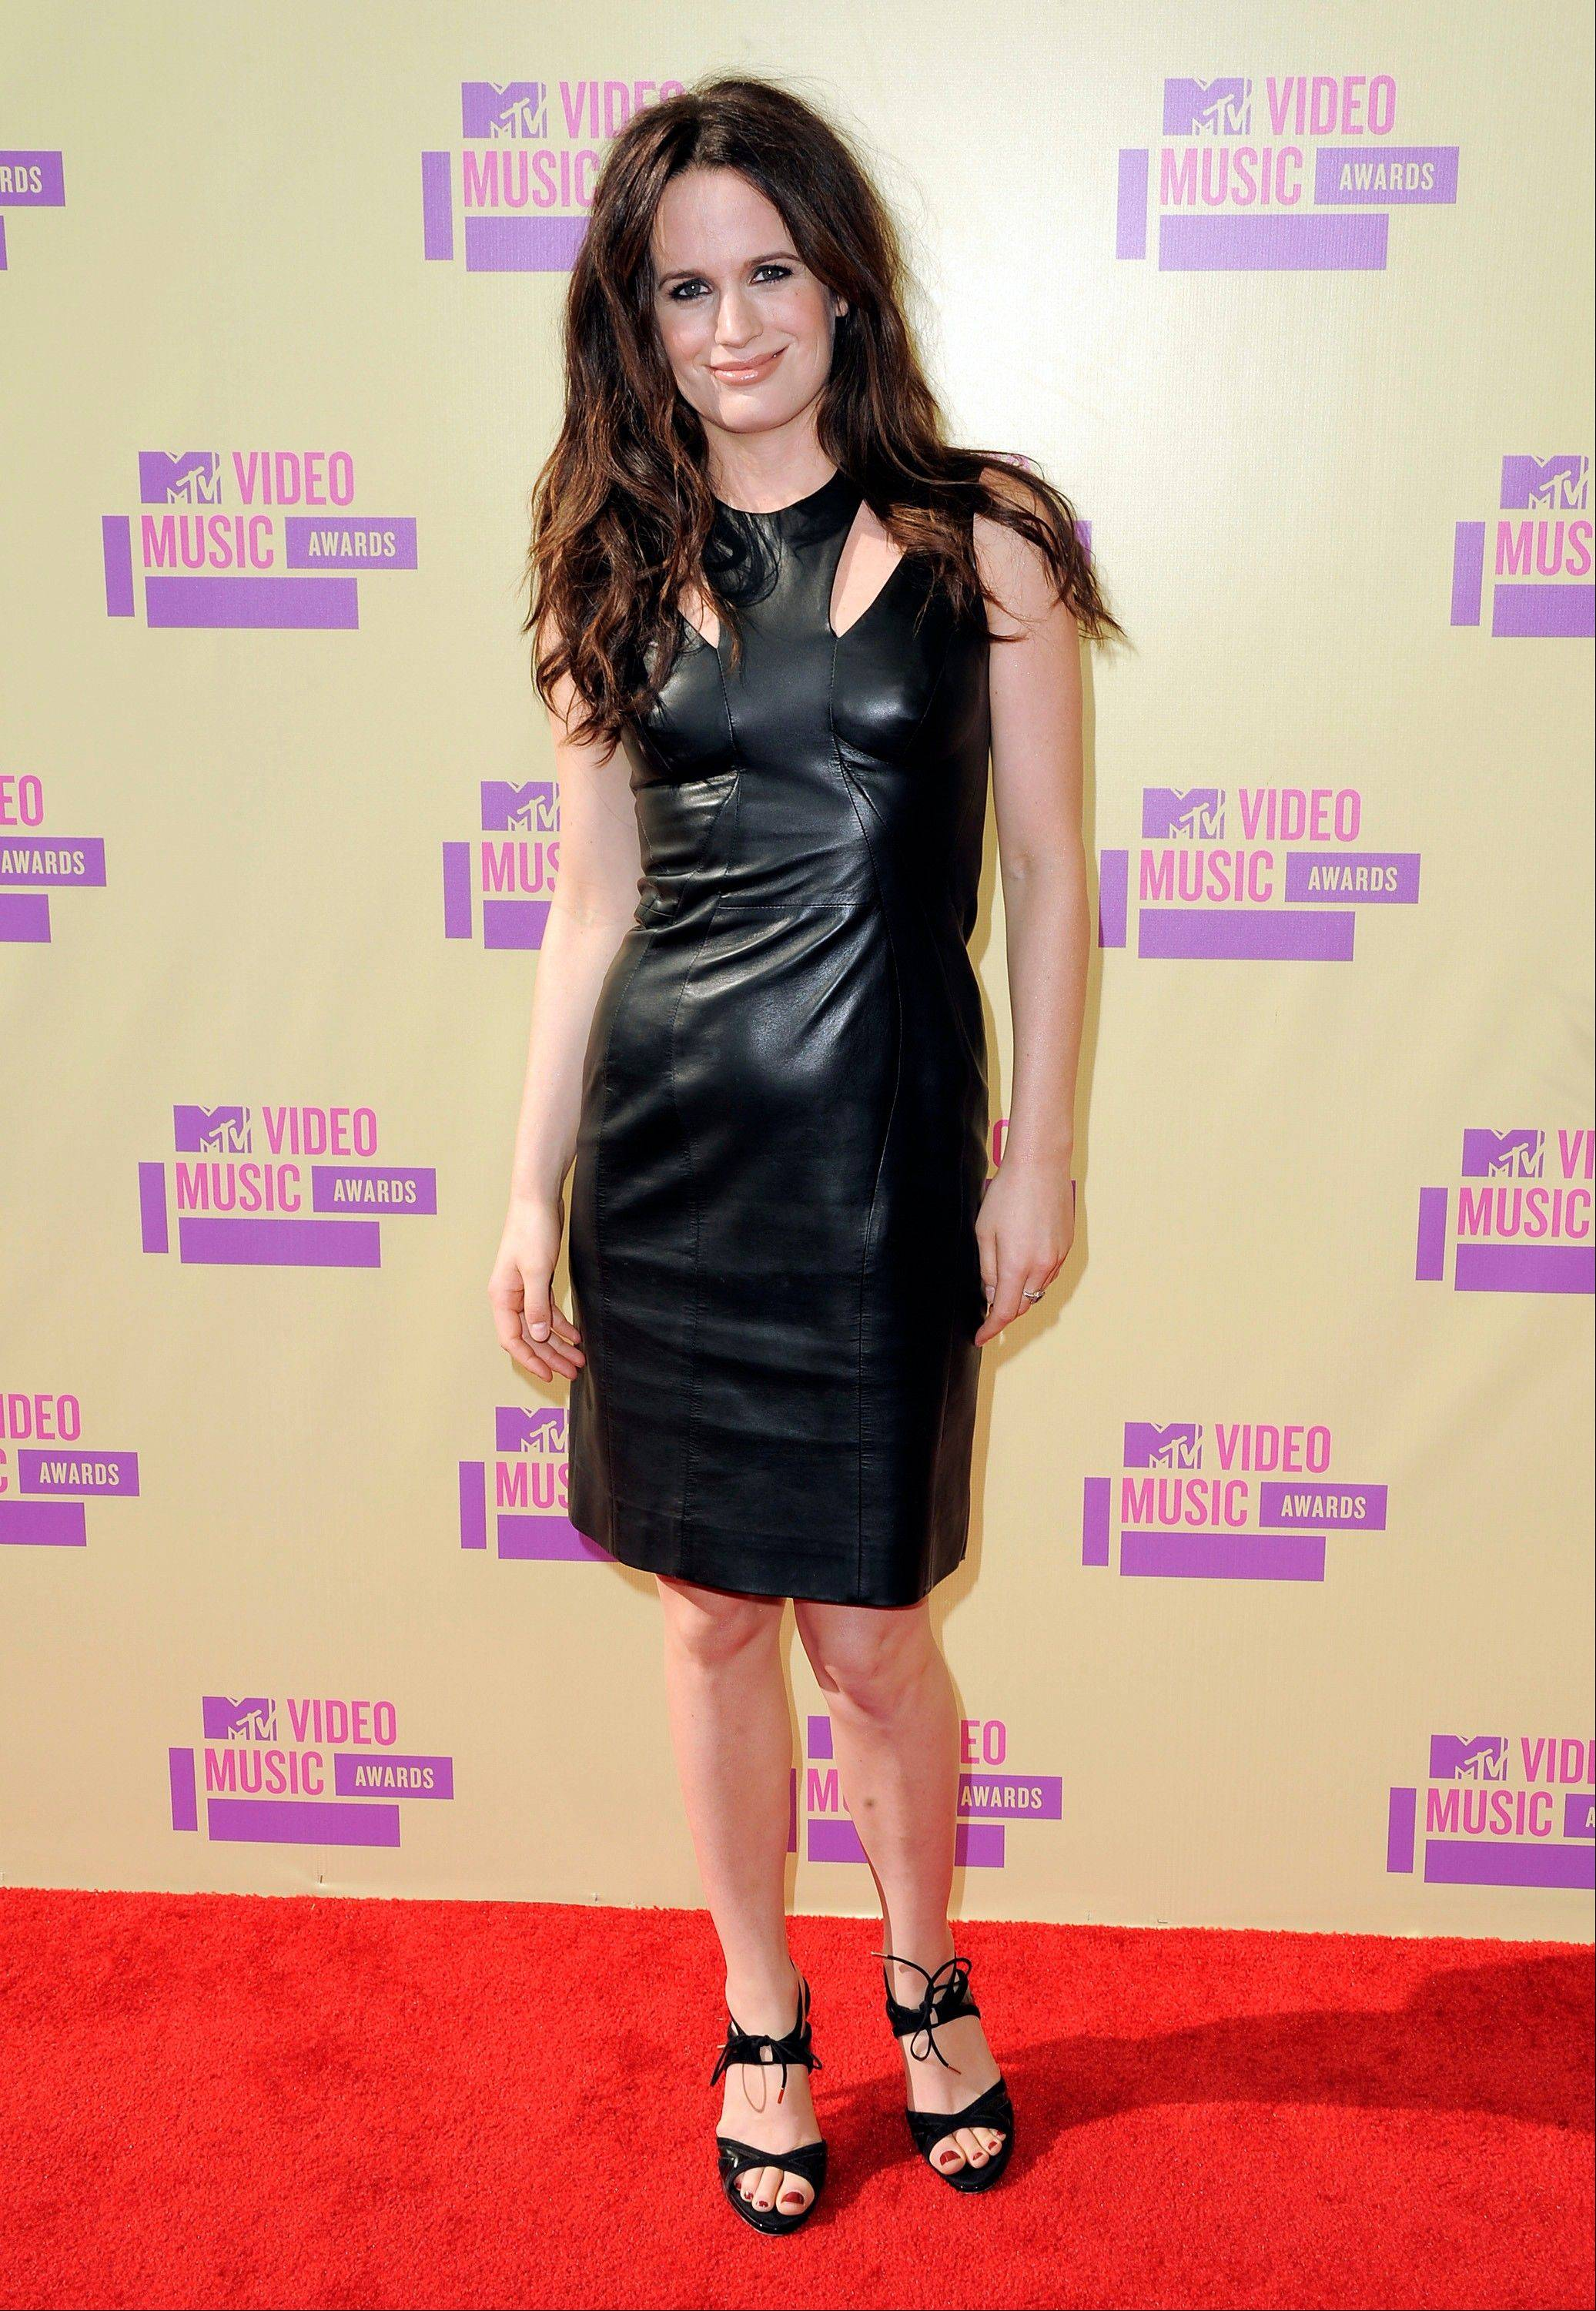 Elizabeth Reaser attends the MTV Video Music Awards on Thursday, Sept. 6, 2012, in Los Angeles.